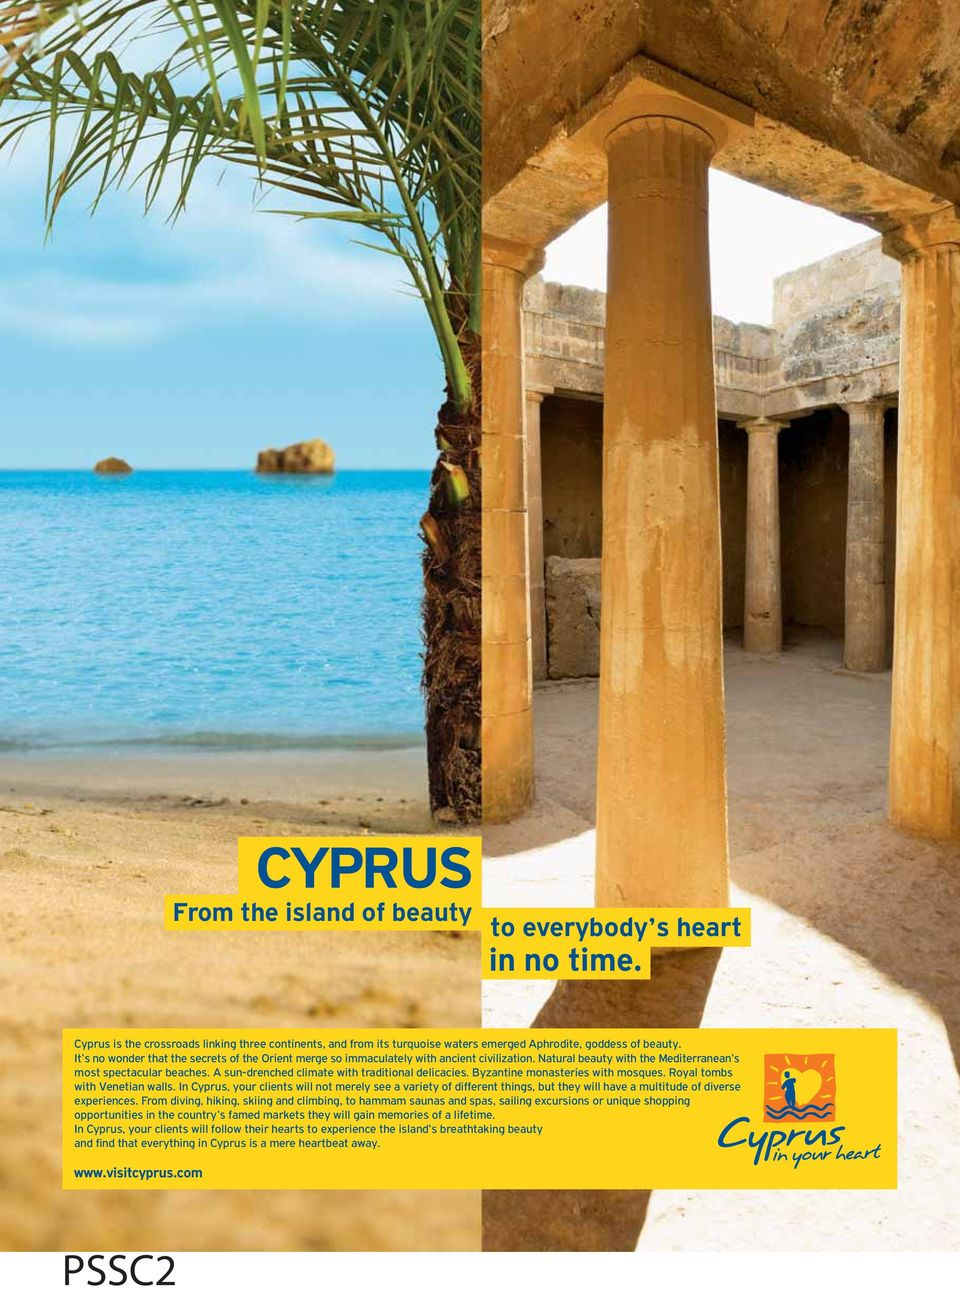 A sun-drenched climate with traditional delicacies. Byzantine monasteries with mosques. Royal tombs with Venetian walls.